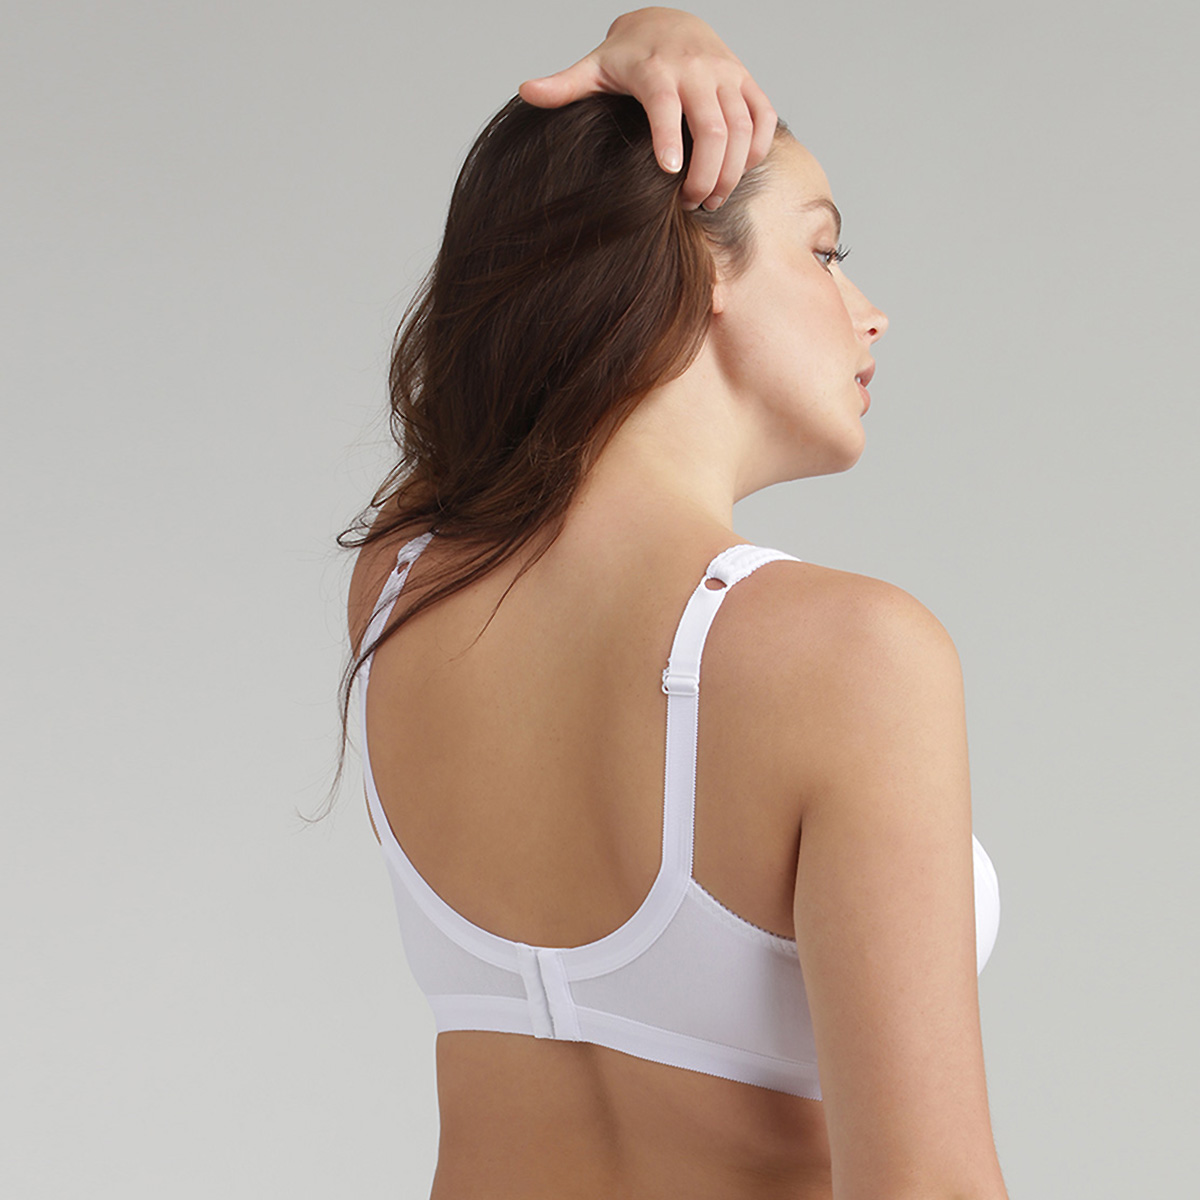 Non-wired bra in white Cotton Support, , PLAYTEX